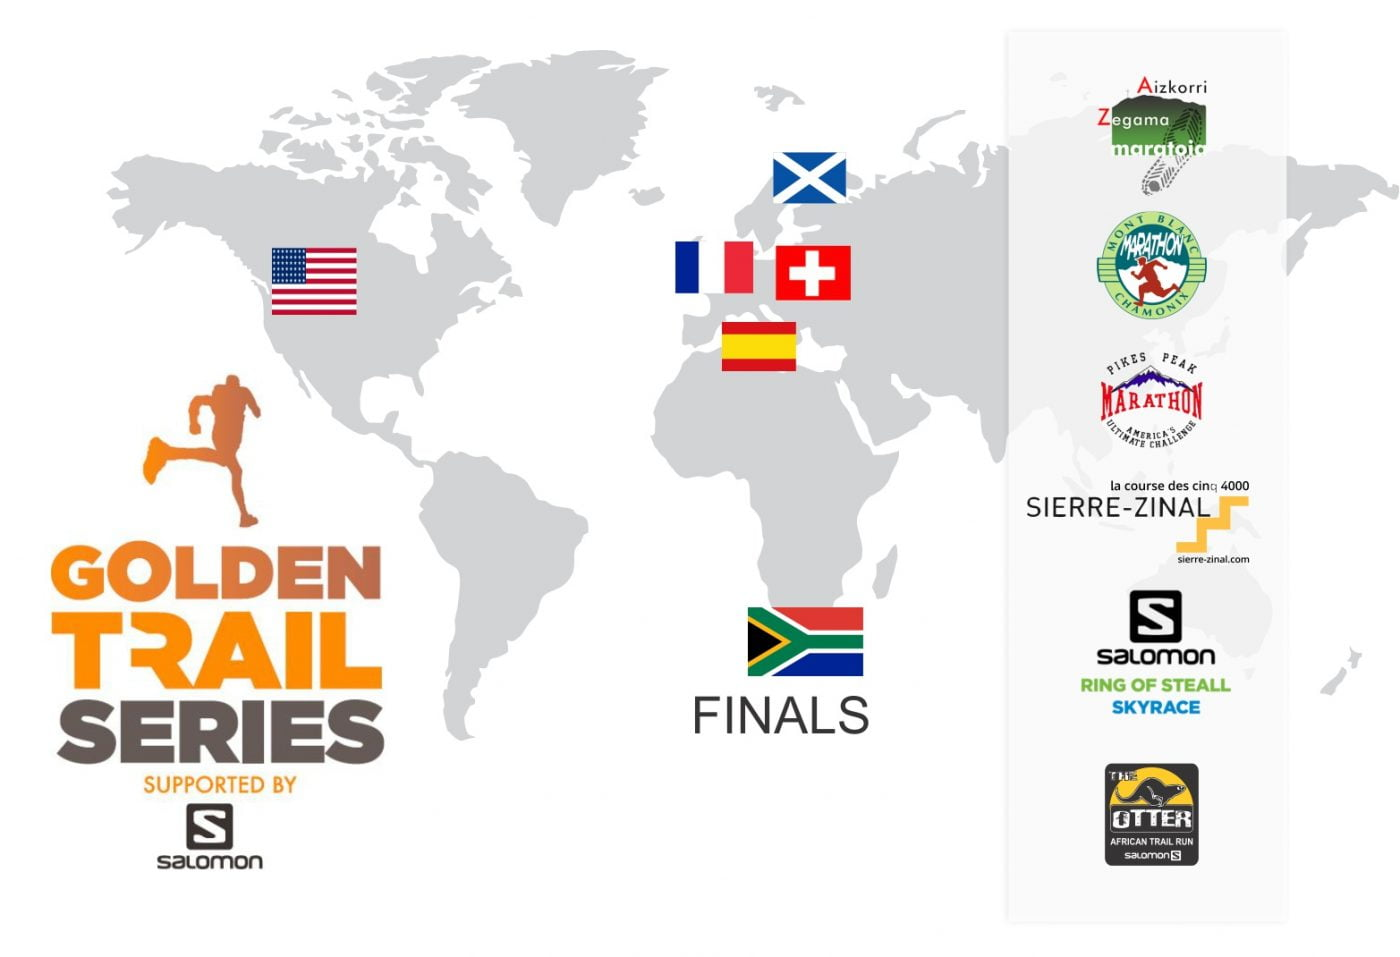 9cec96686 OTTER will be the GRAND FINAL for international Trail Running Series ...